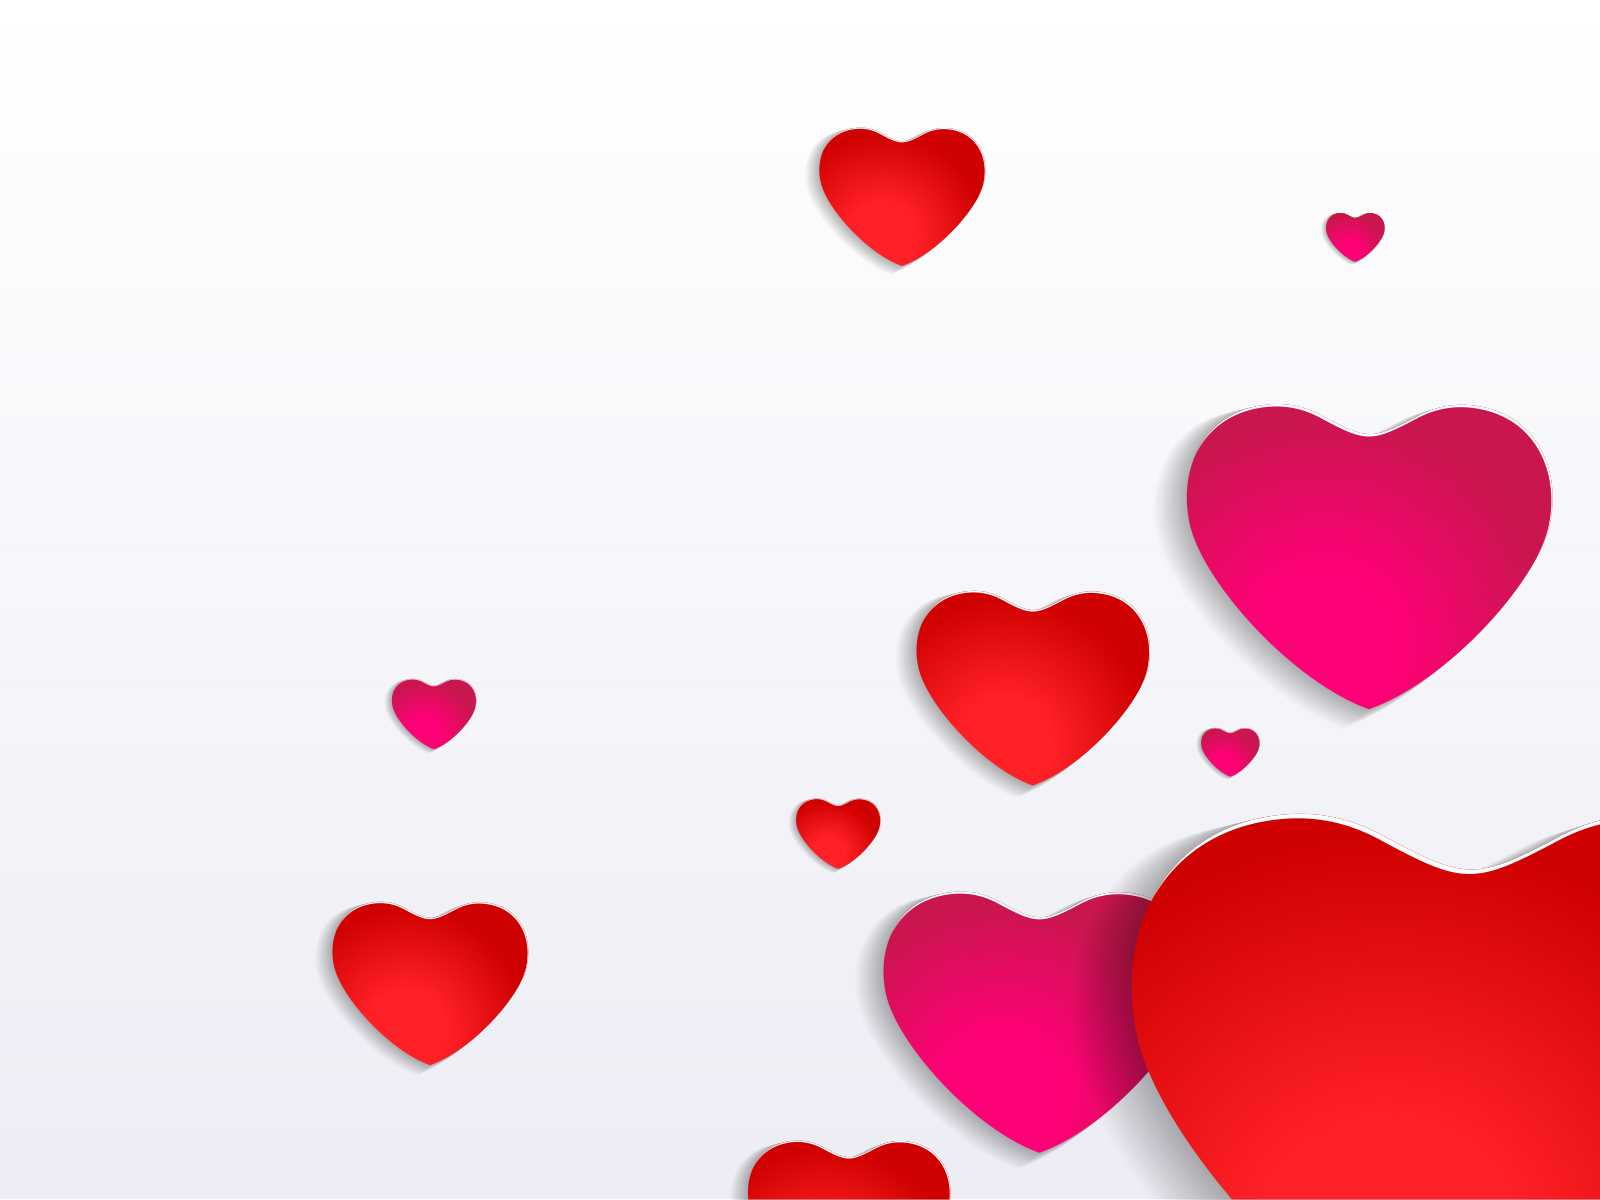 Valentines Day Powerpoint Templates - Love, Red - Free Ppt throughout Valentine Powerpoint Templates Free